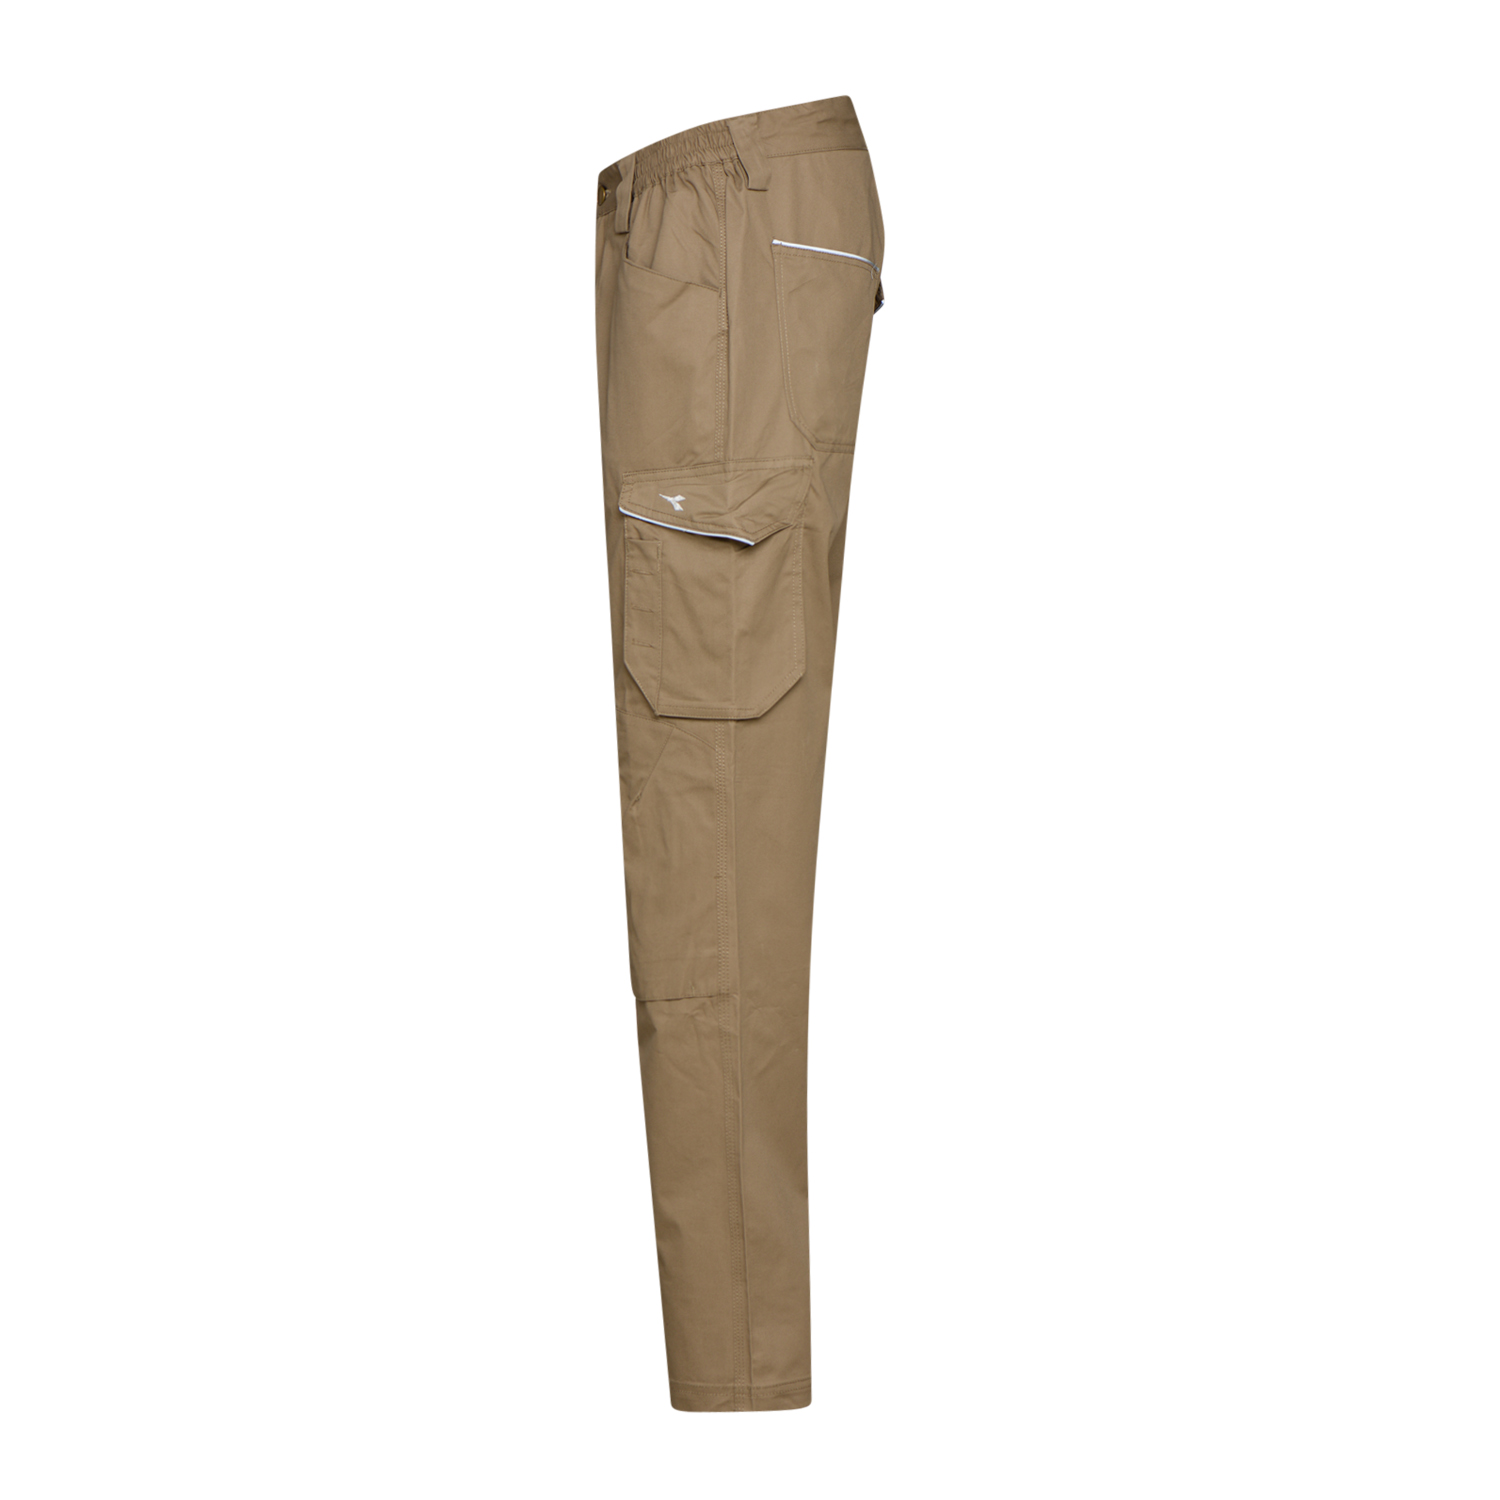 Pantalone da Lavoro Rock Light Cotton ISO 13688:2013 per Uomo IT M Utility Diadora